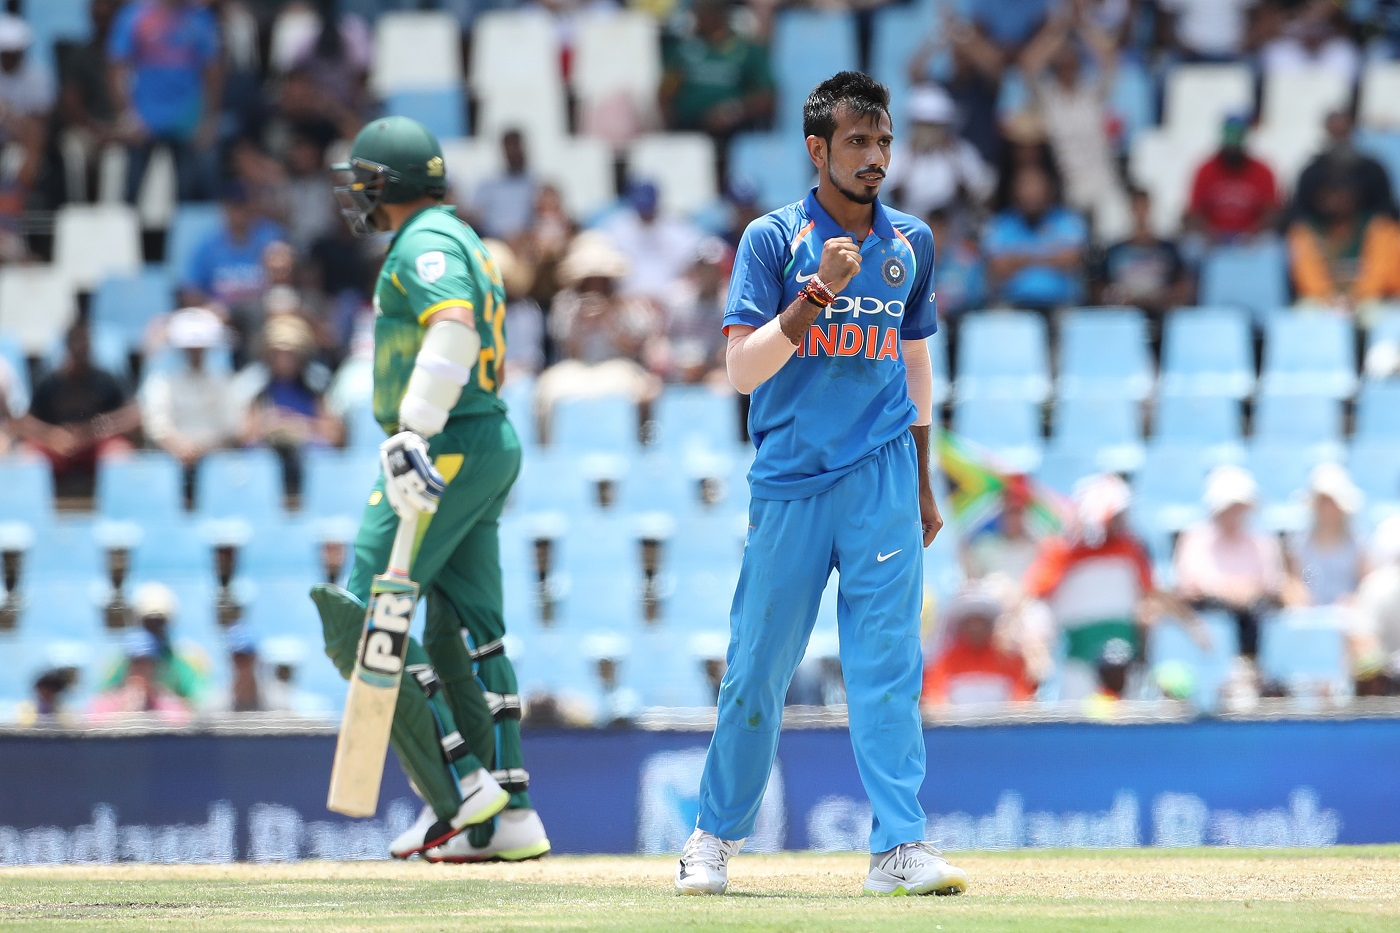 SA vs IND, 2nd ODI: Cricket Is Bloody Bonkers, Says Michael Vaughan After Bizarre Lunch Break